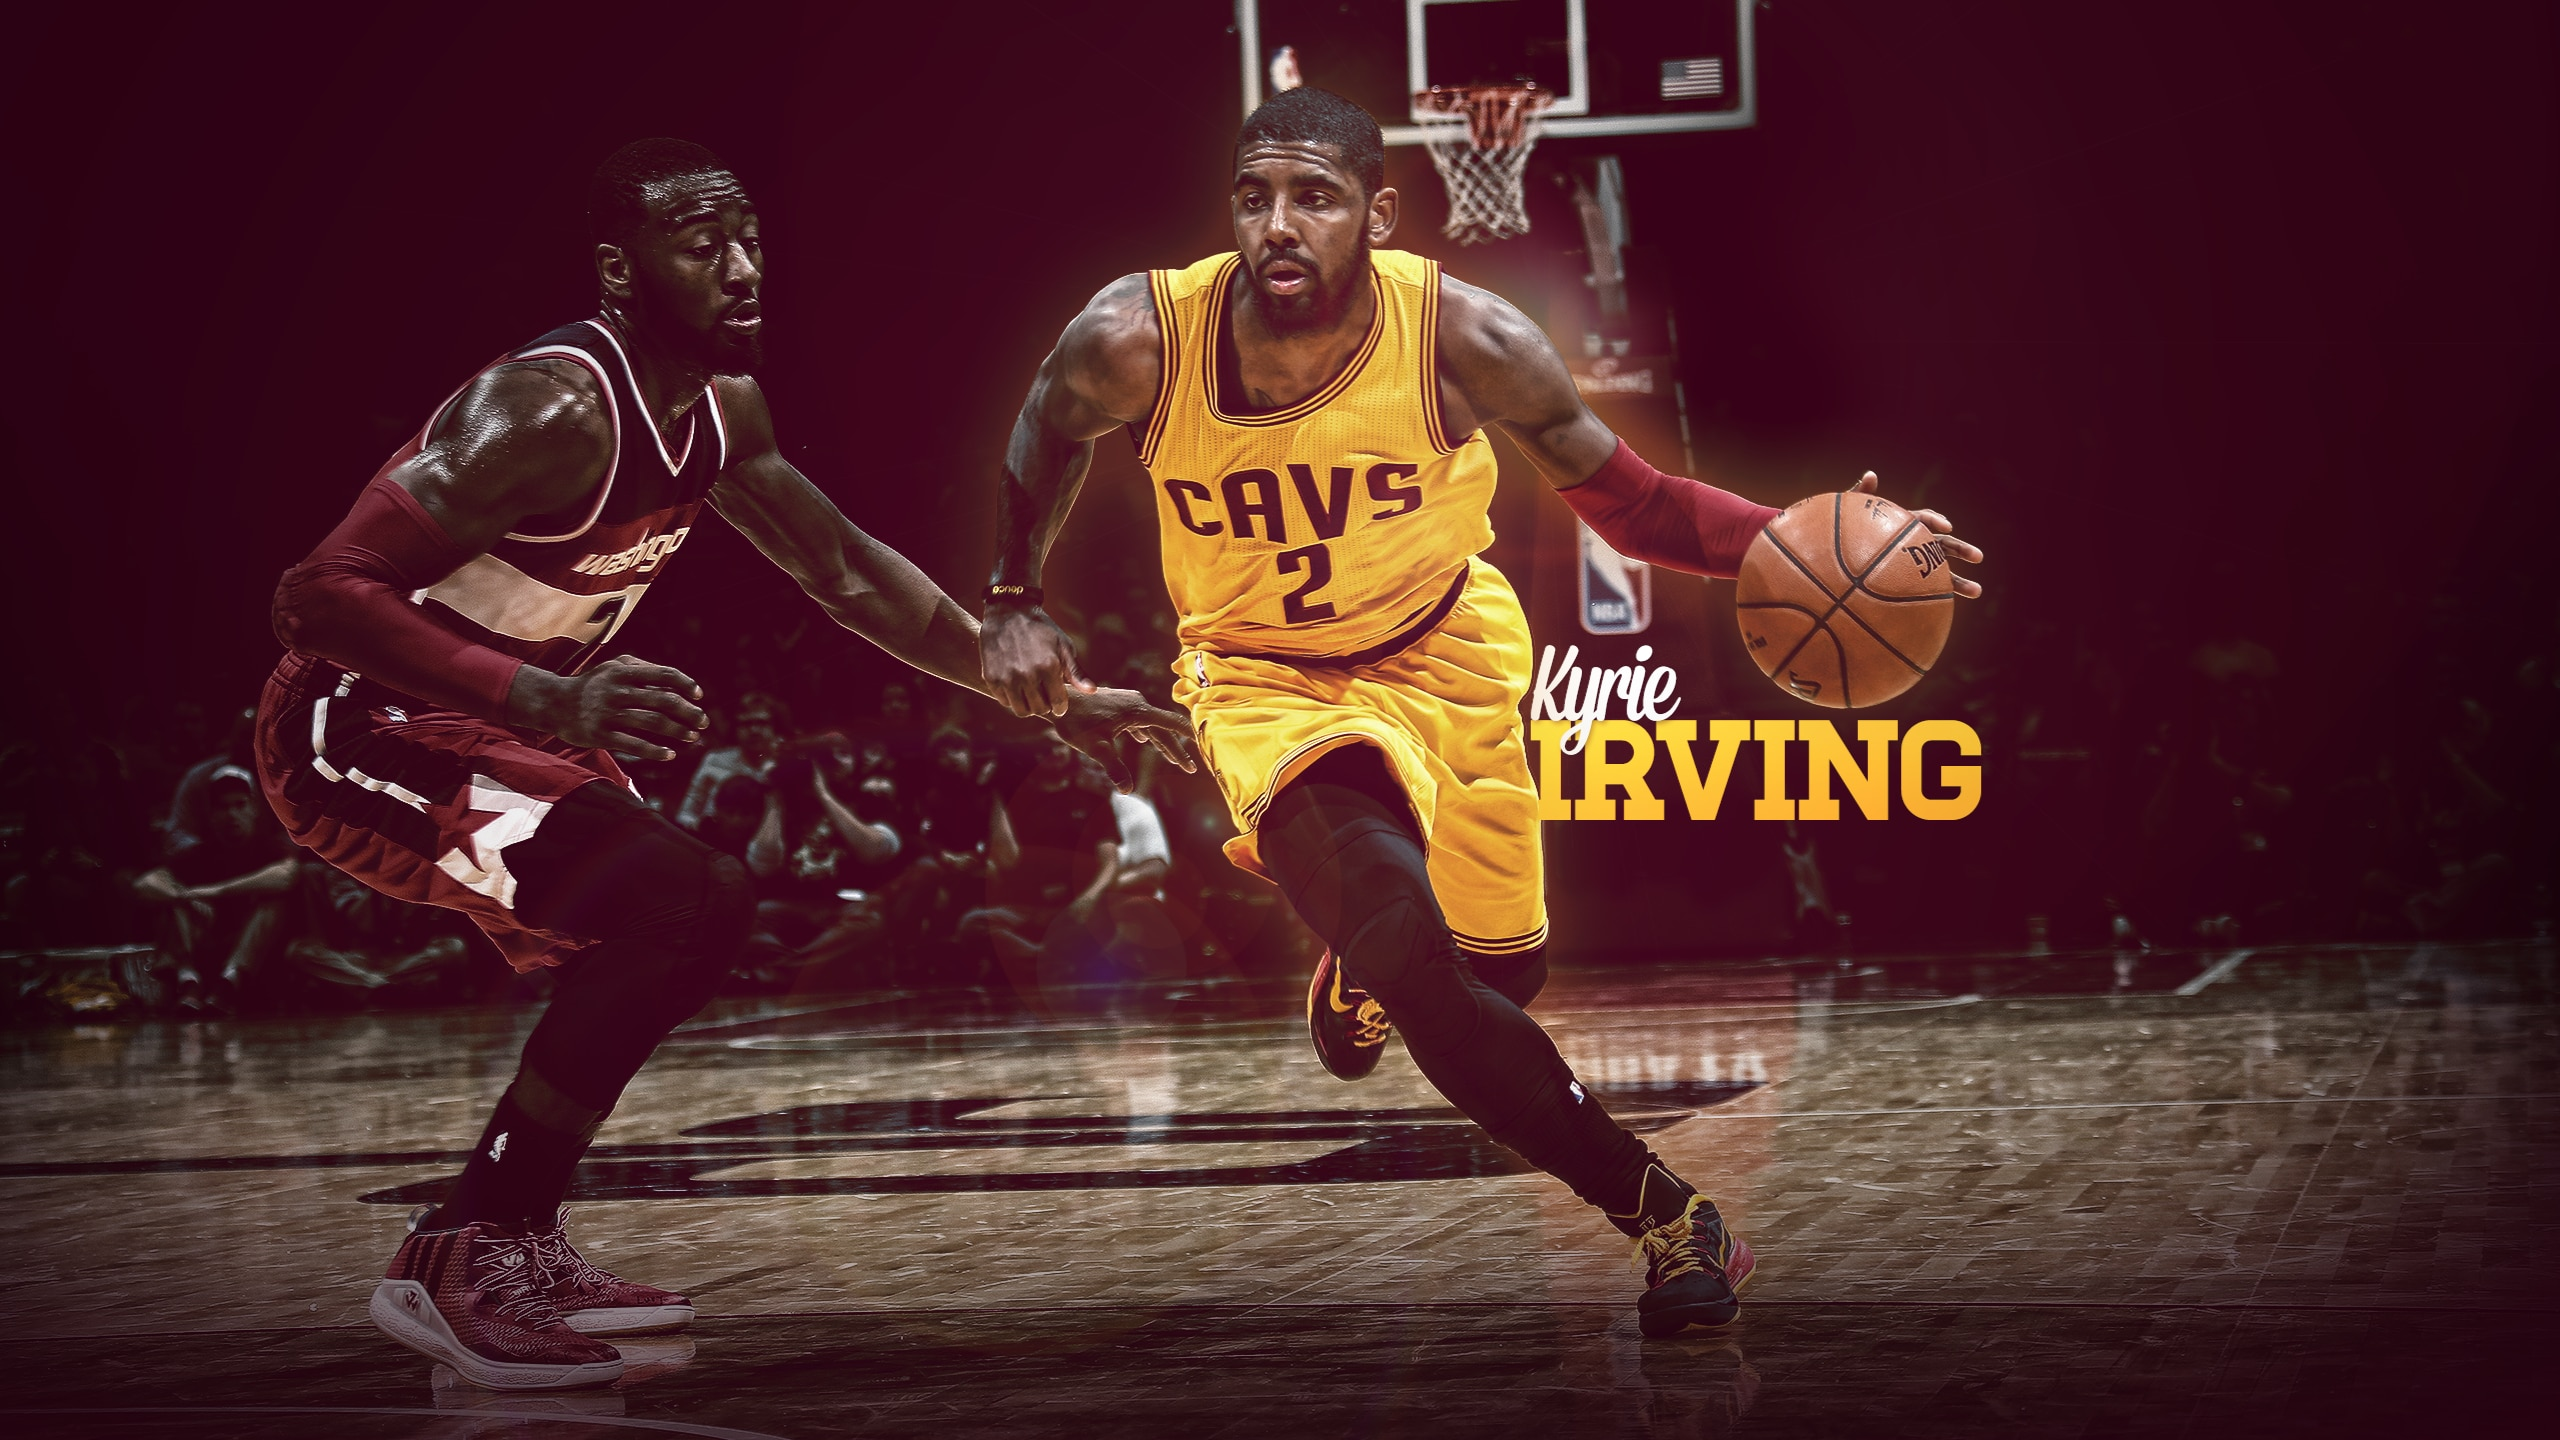 John Wall Iphone Wallpaper Fan Wallpapers Cleveland Cavaliers